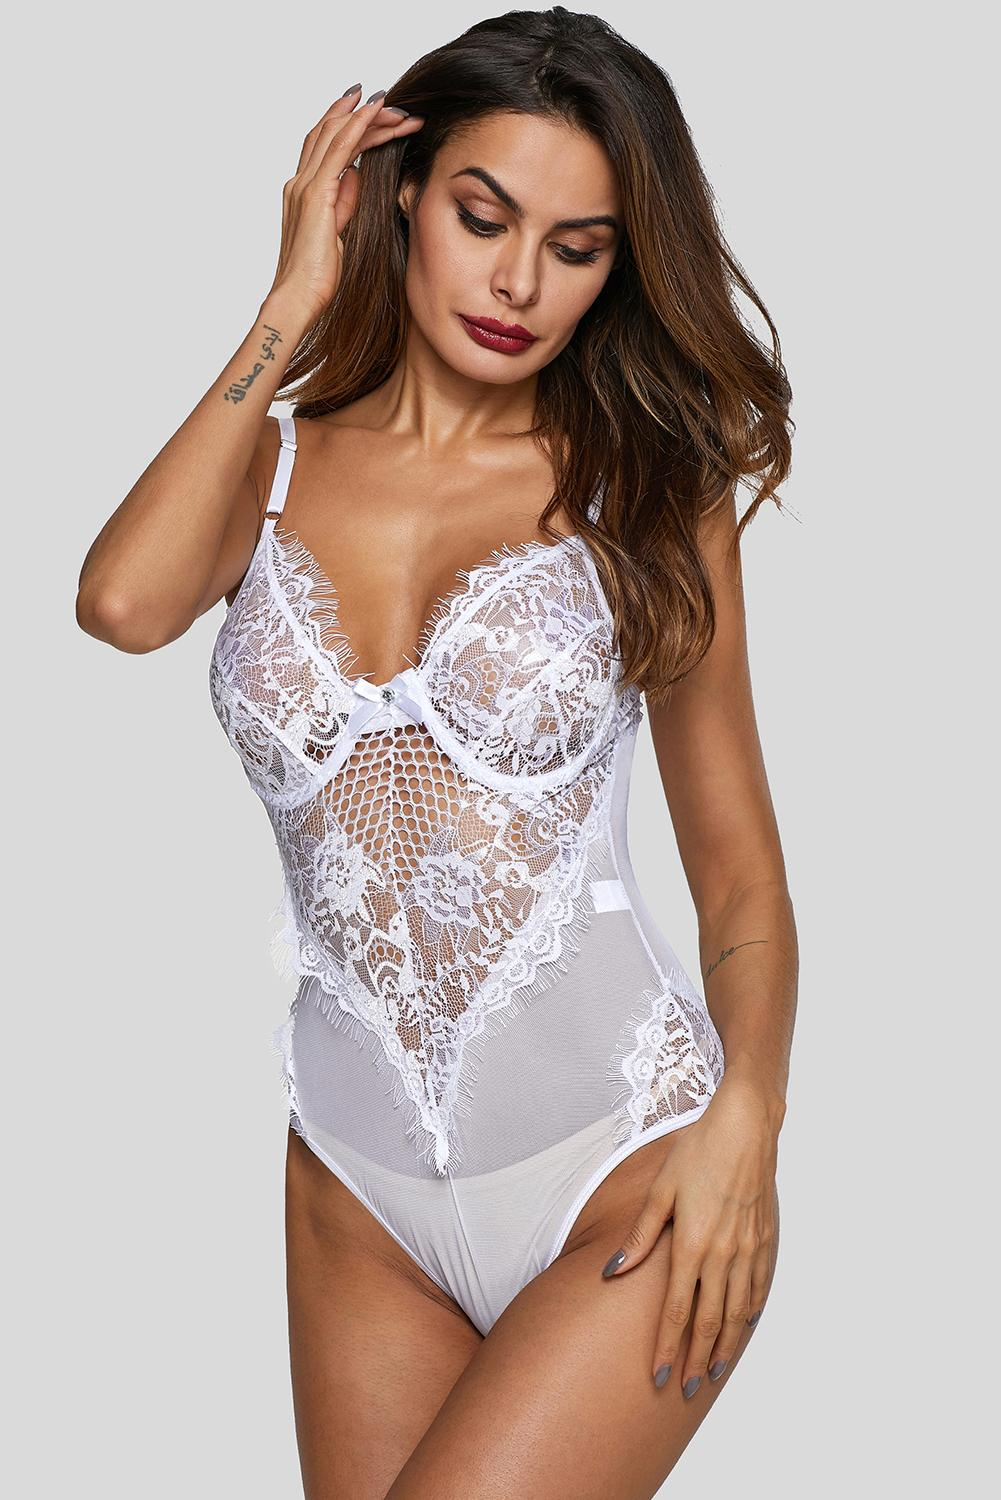 White Mesh Lace Cupped Teddy Lingerie